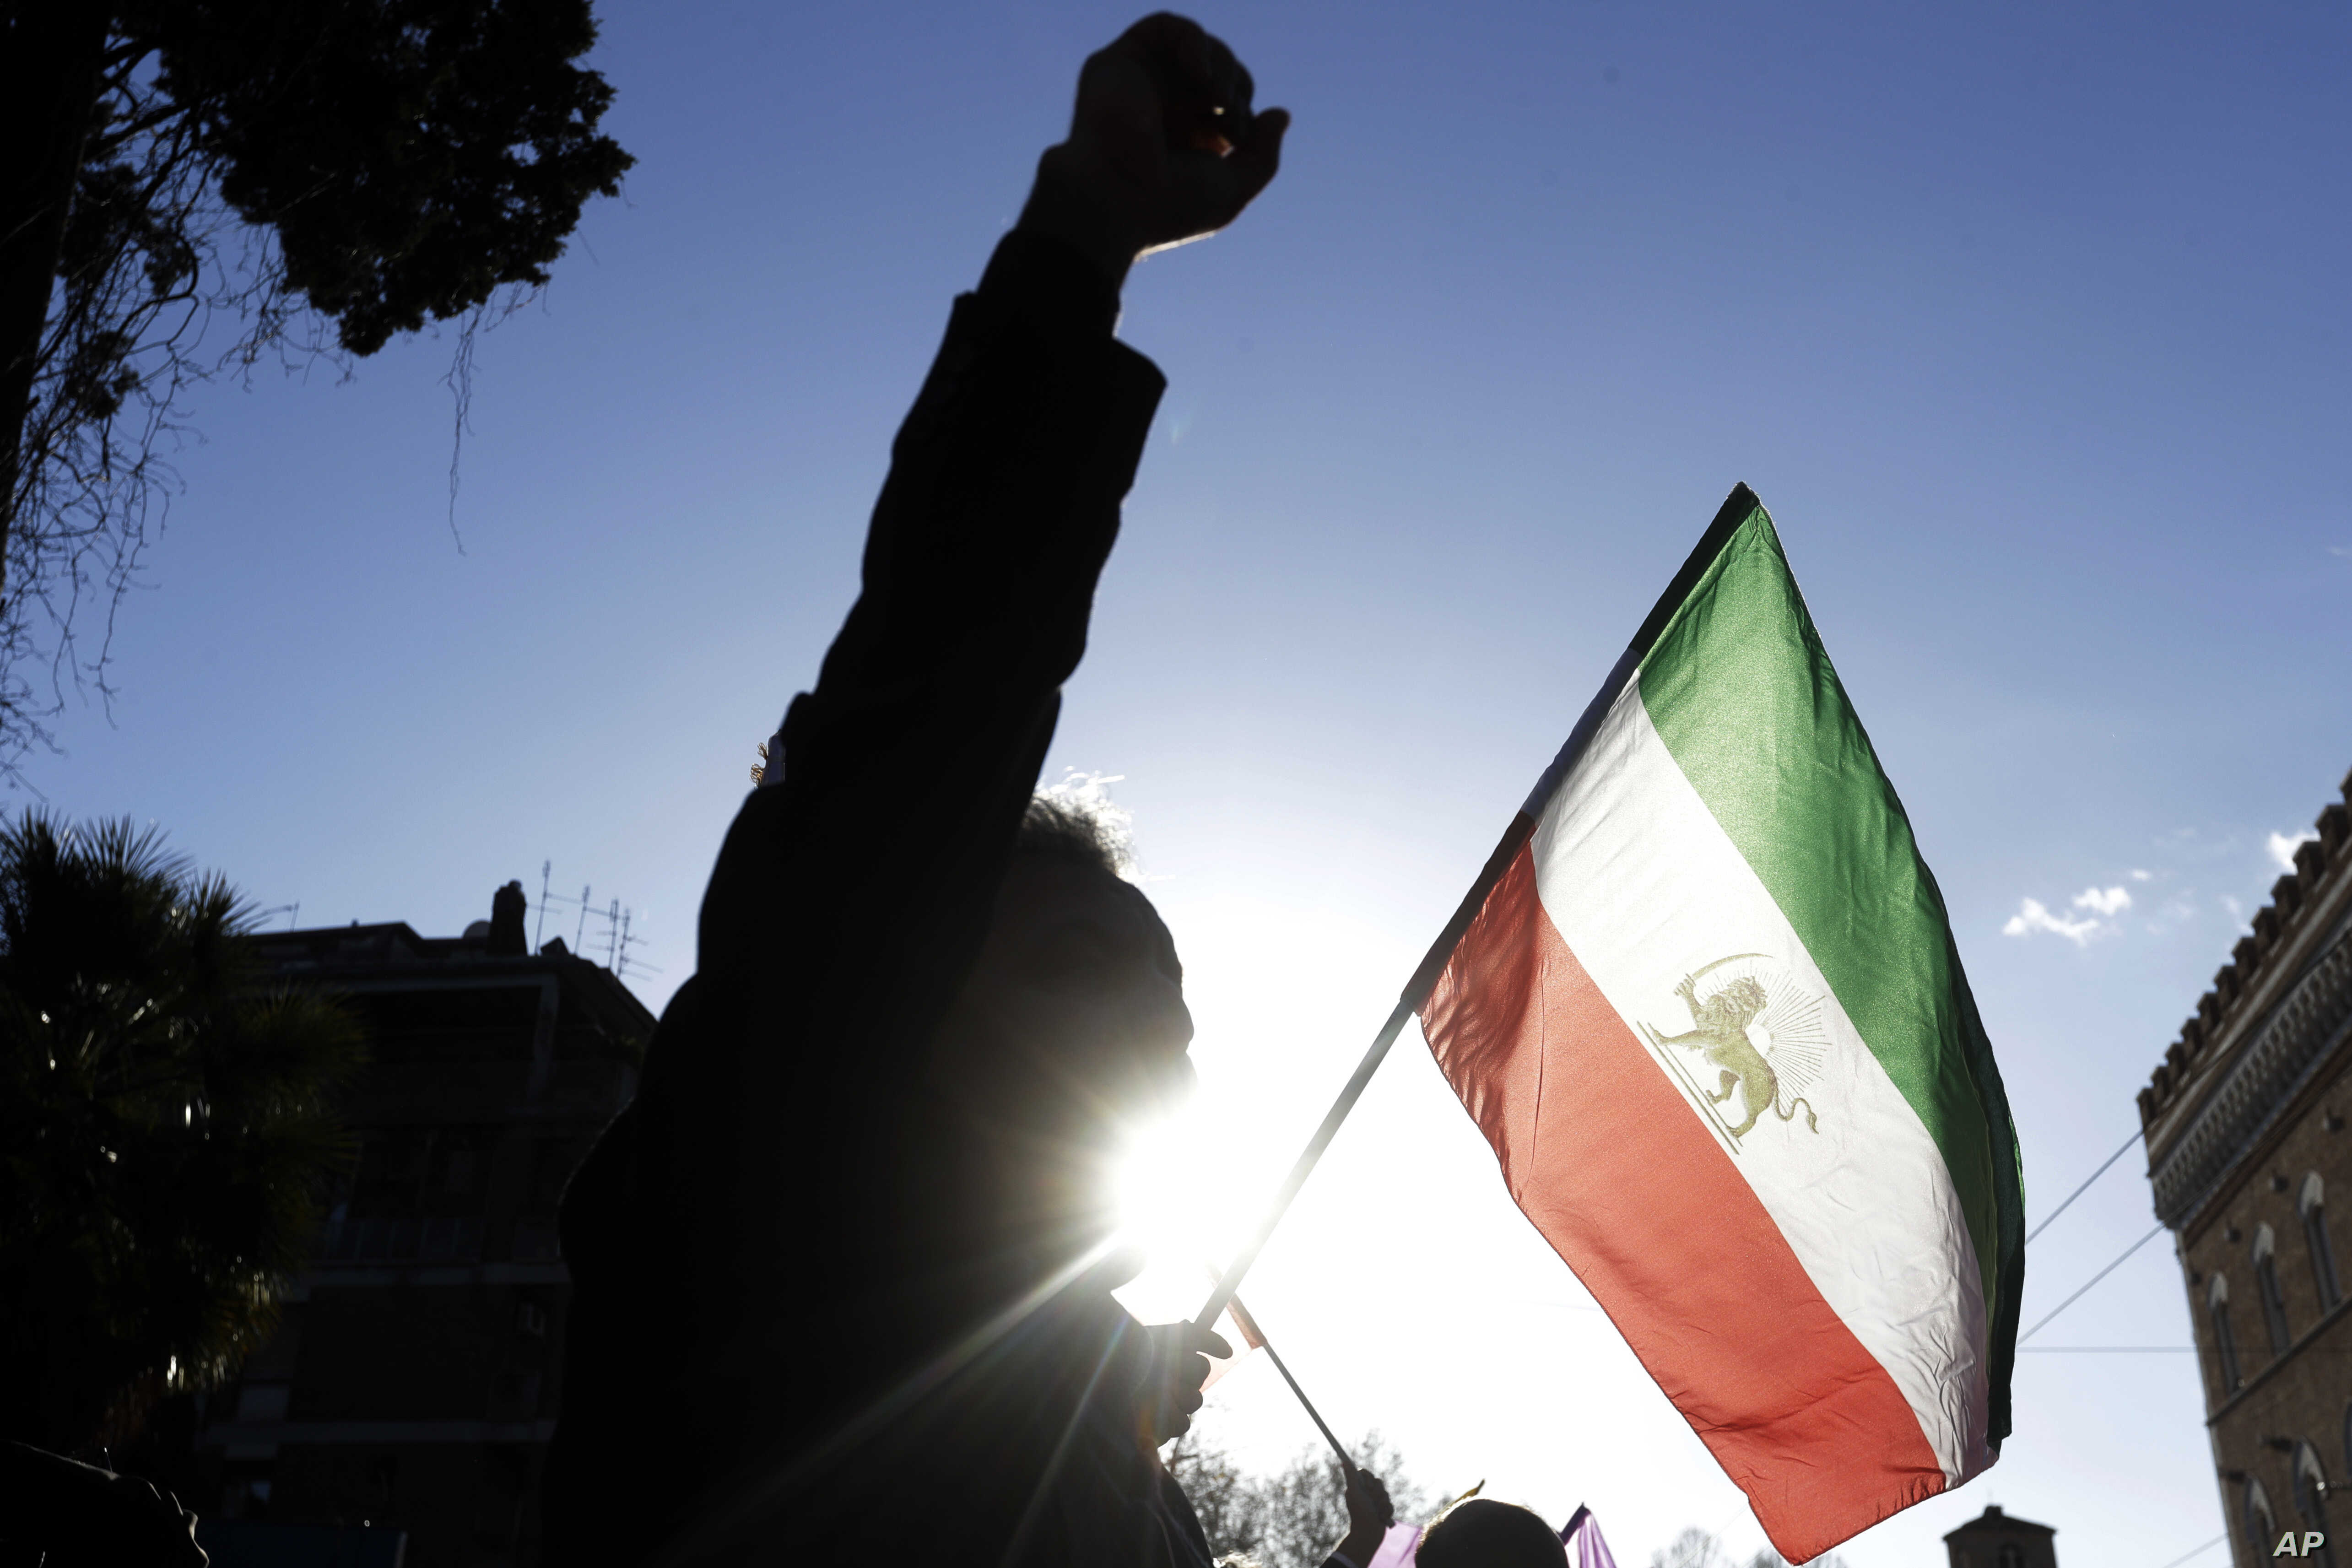 A demonstrator shouts slogans near the flag of the former Imperial State of Iran as he gathers with supporters of Maryam Rajavi, head of the Iranian opposition group National Council of Resistance, outside the Iran Embassy, in Rome, Jan. 2, 2017.